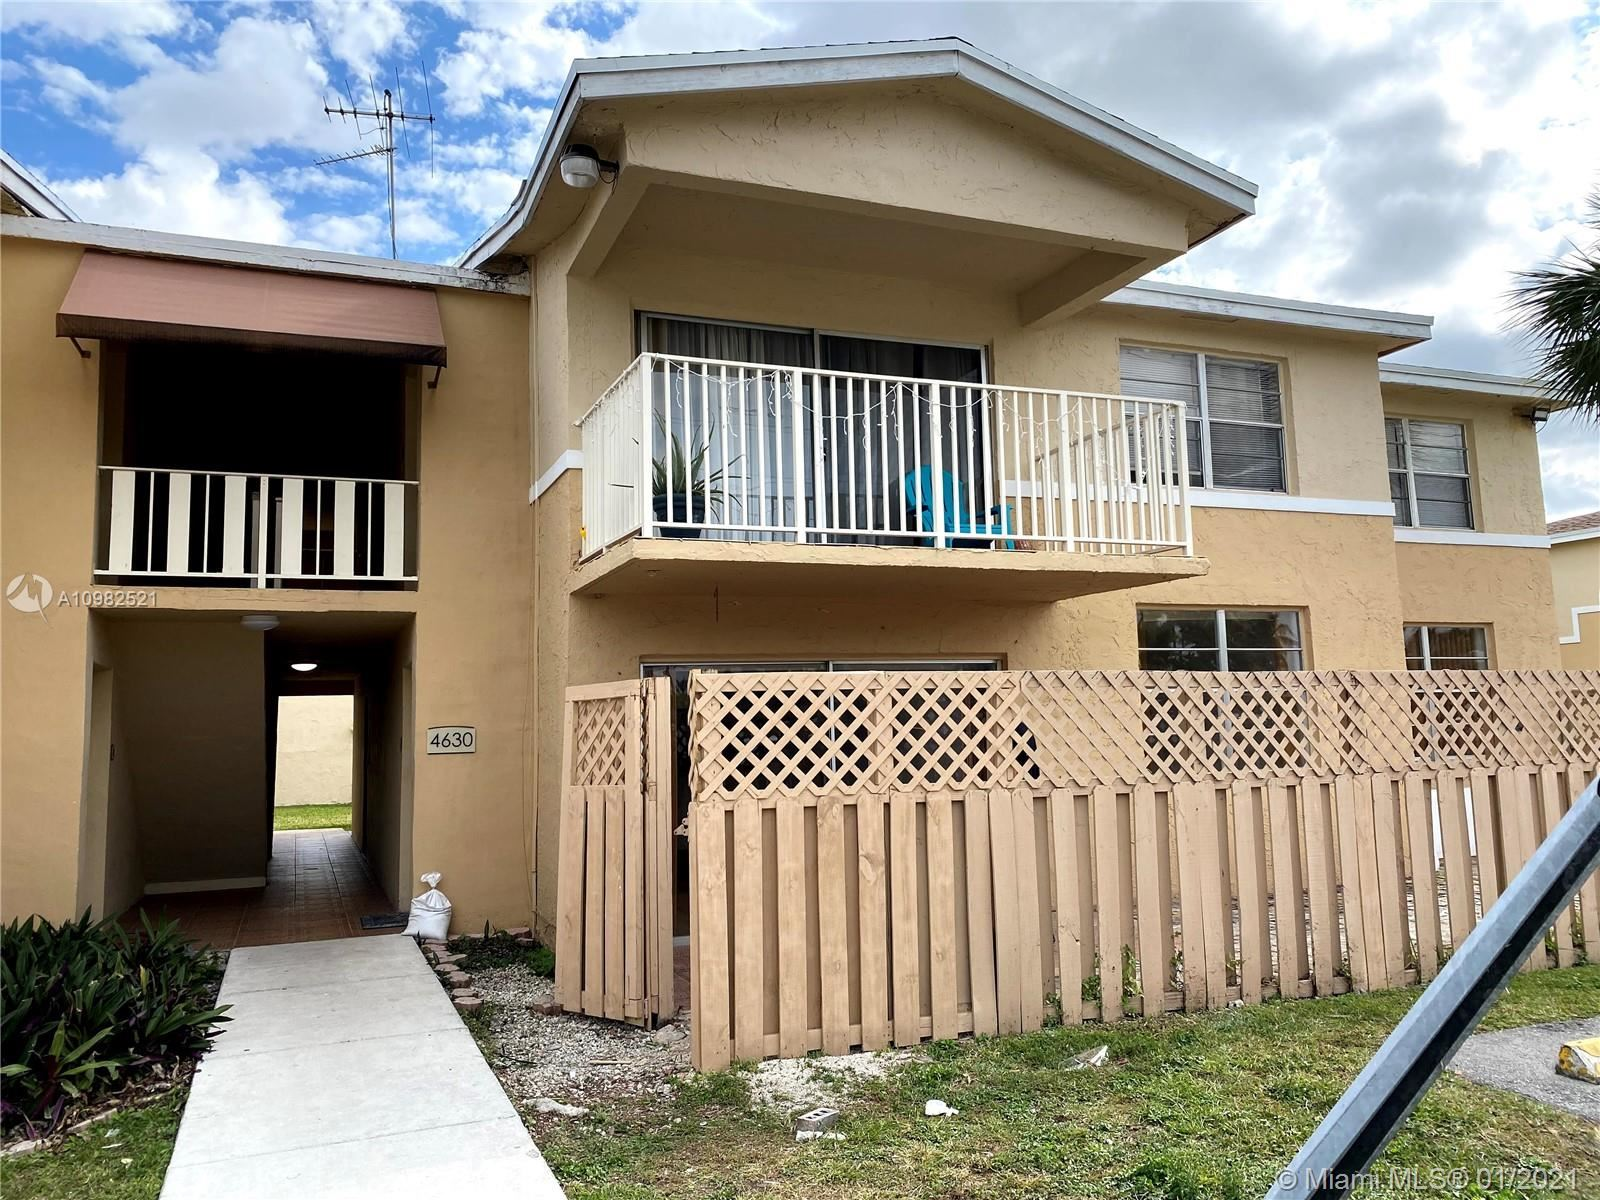 4630 NW 79 Ave #1A, Doral, FL 33166 - #: A10982521